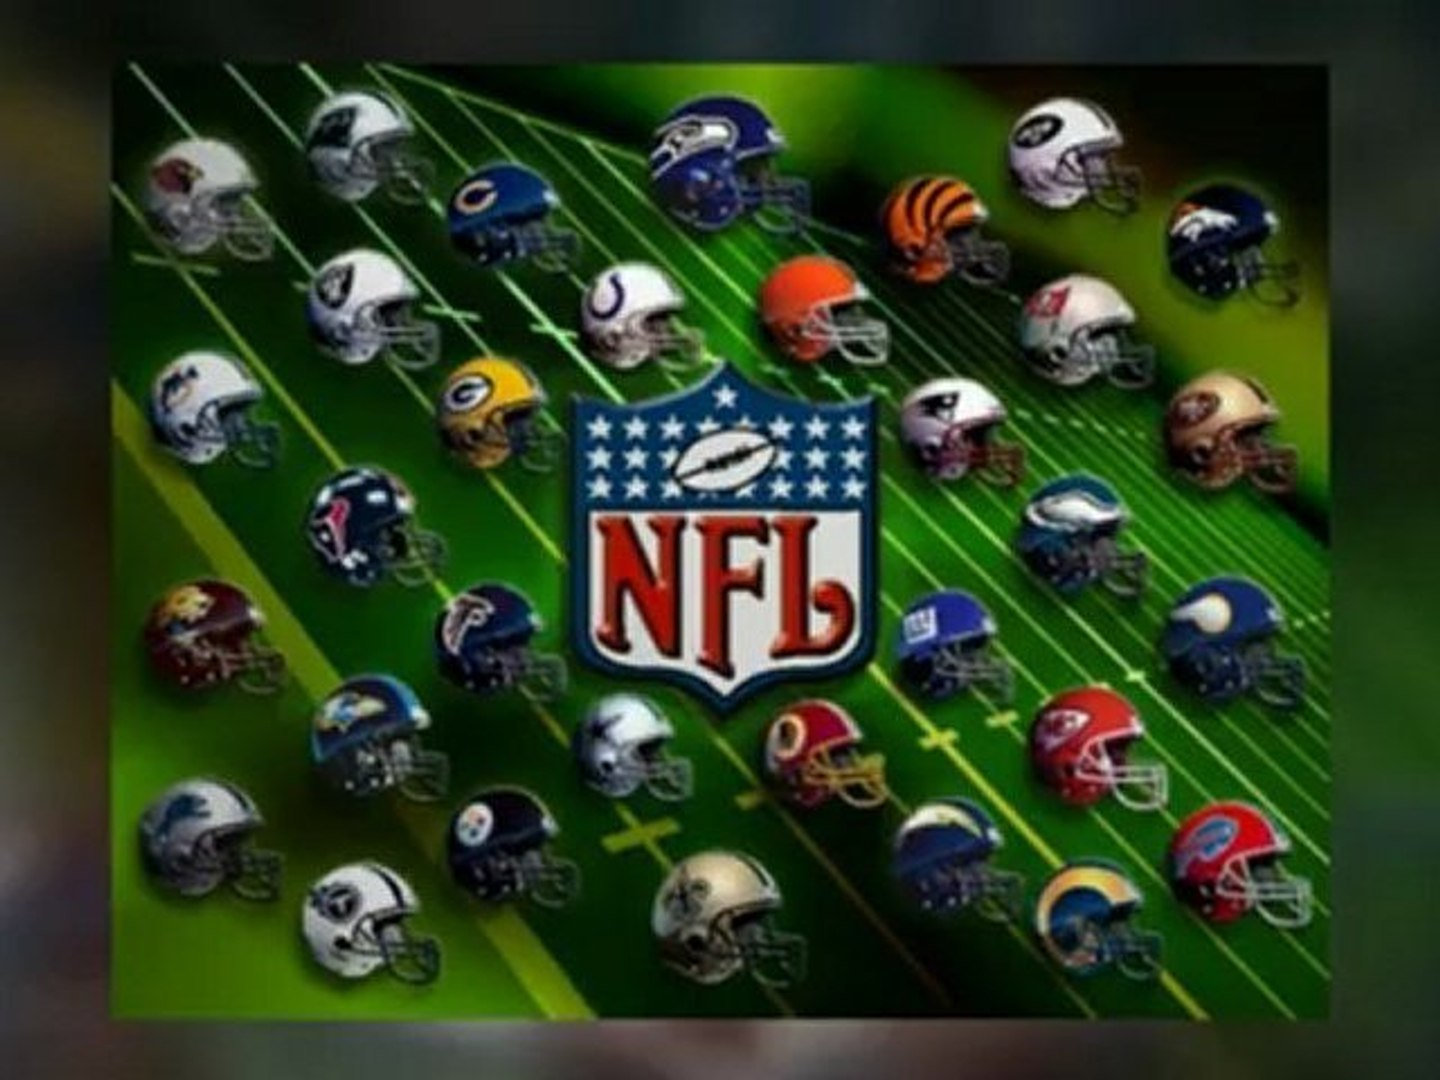 browns vs packers nfl games live on computer - watch browns vs packers nfl live espn - browns vs pac